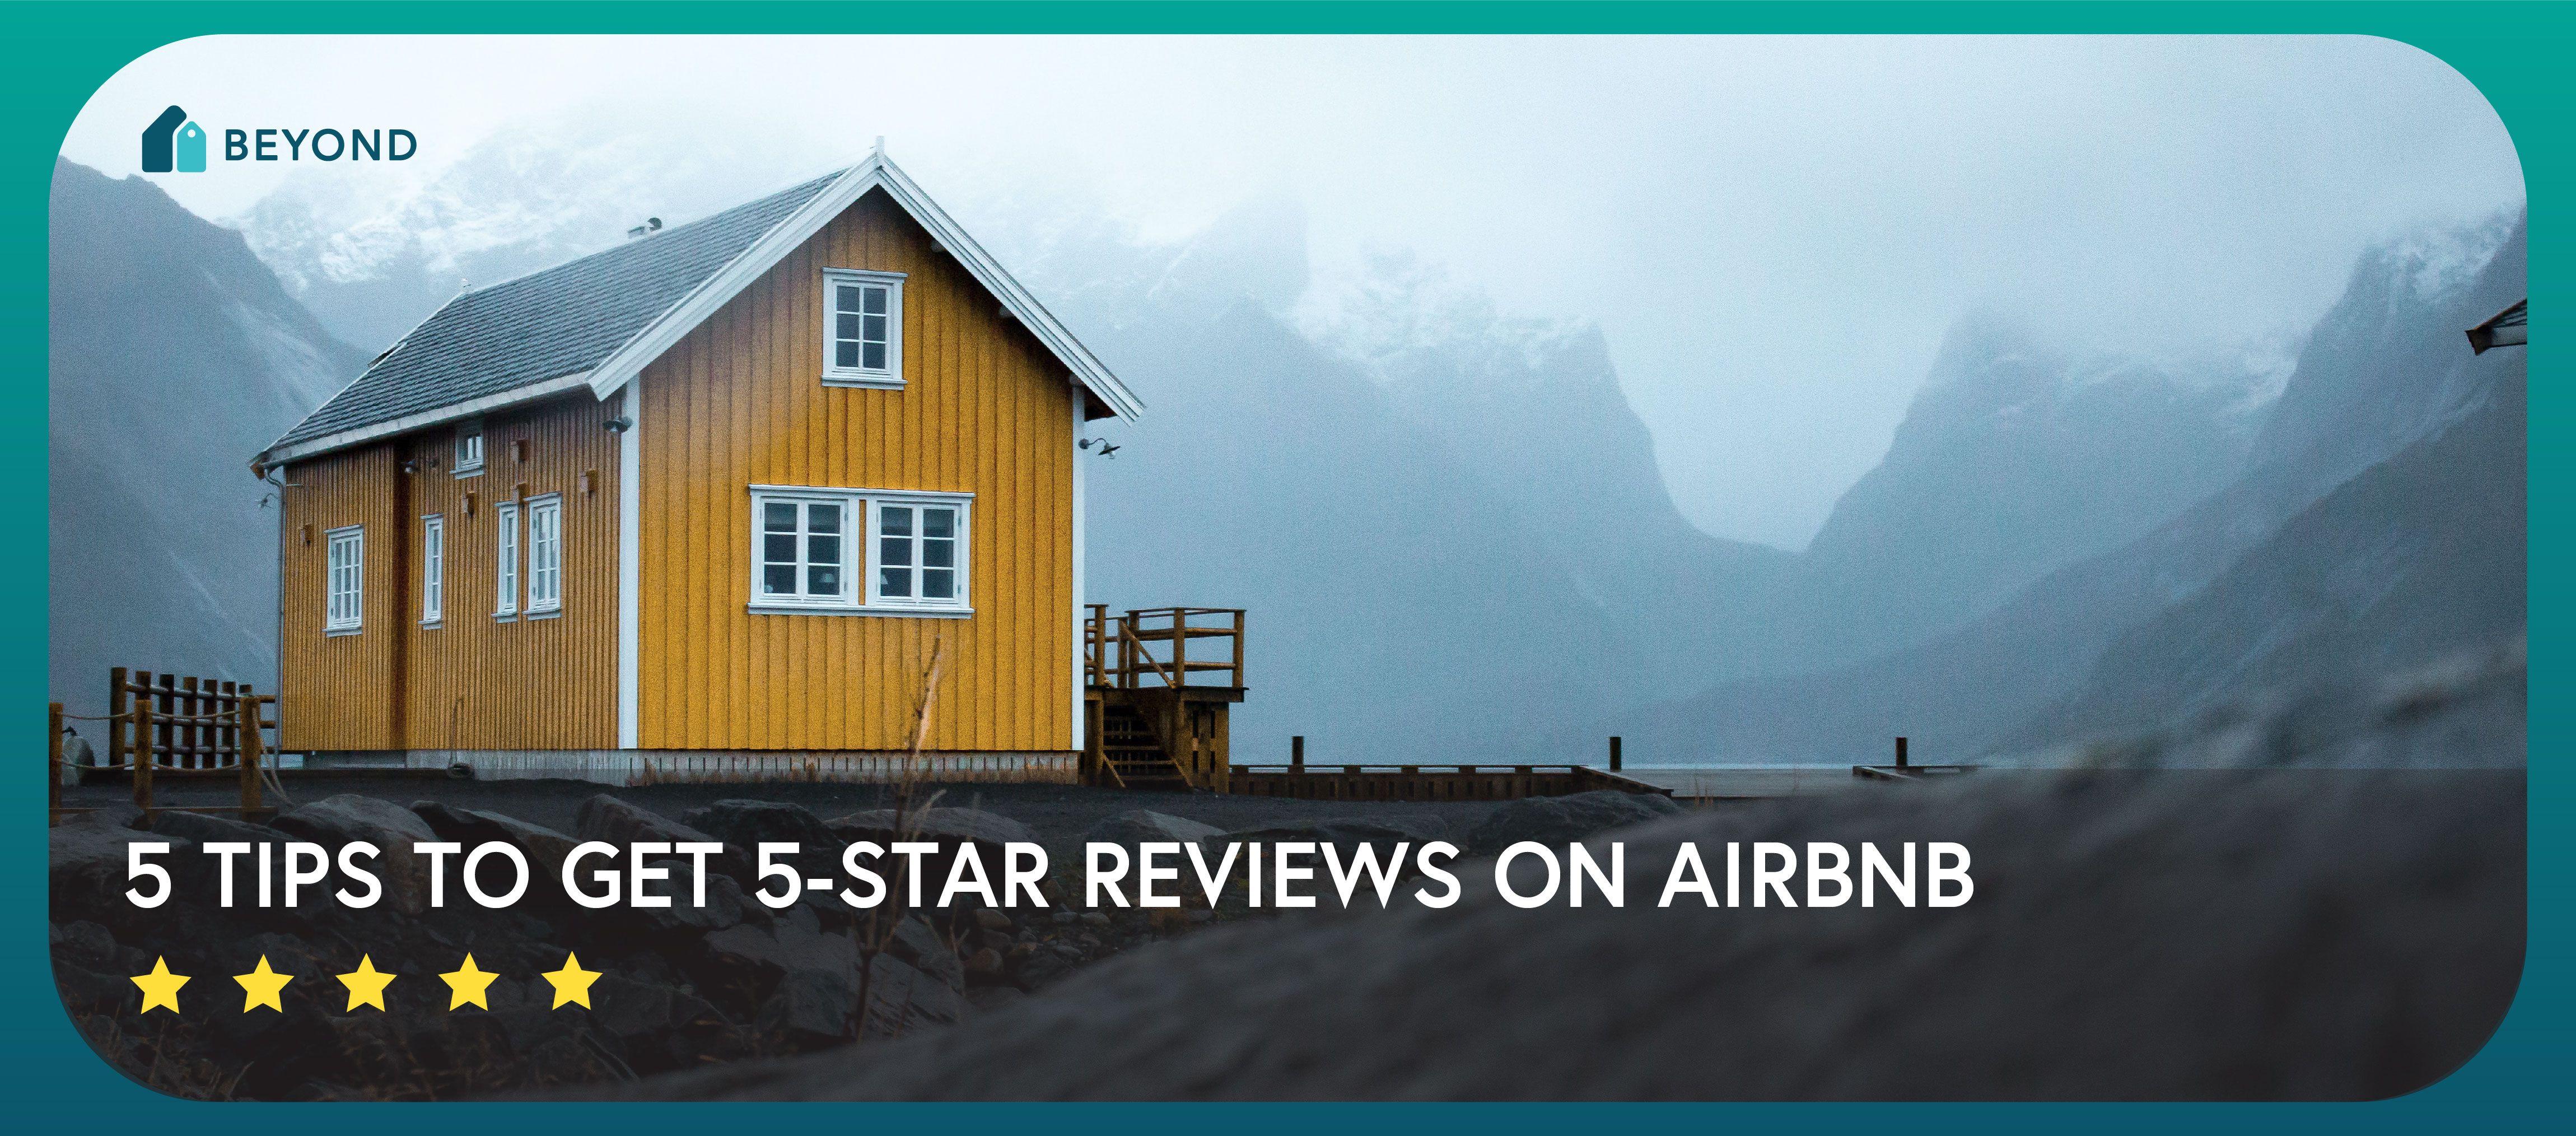 5 Tips to Get 5-Star Reviews on Airbnb